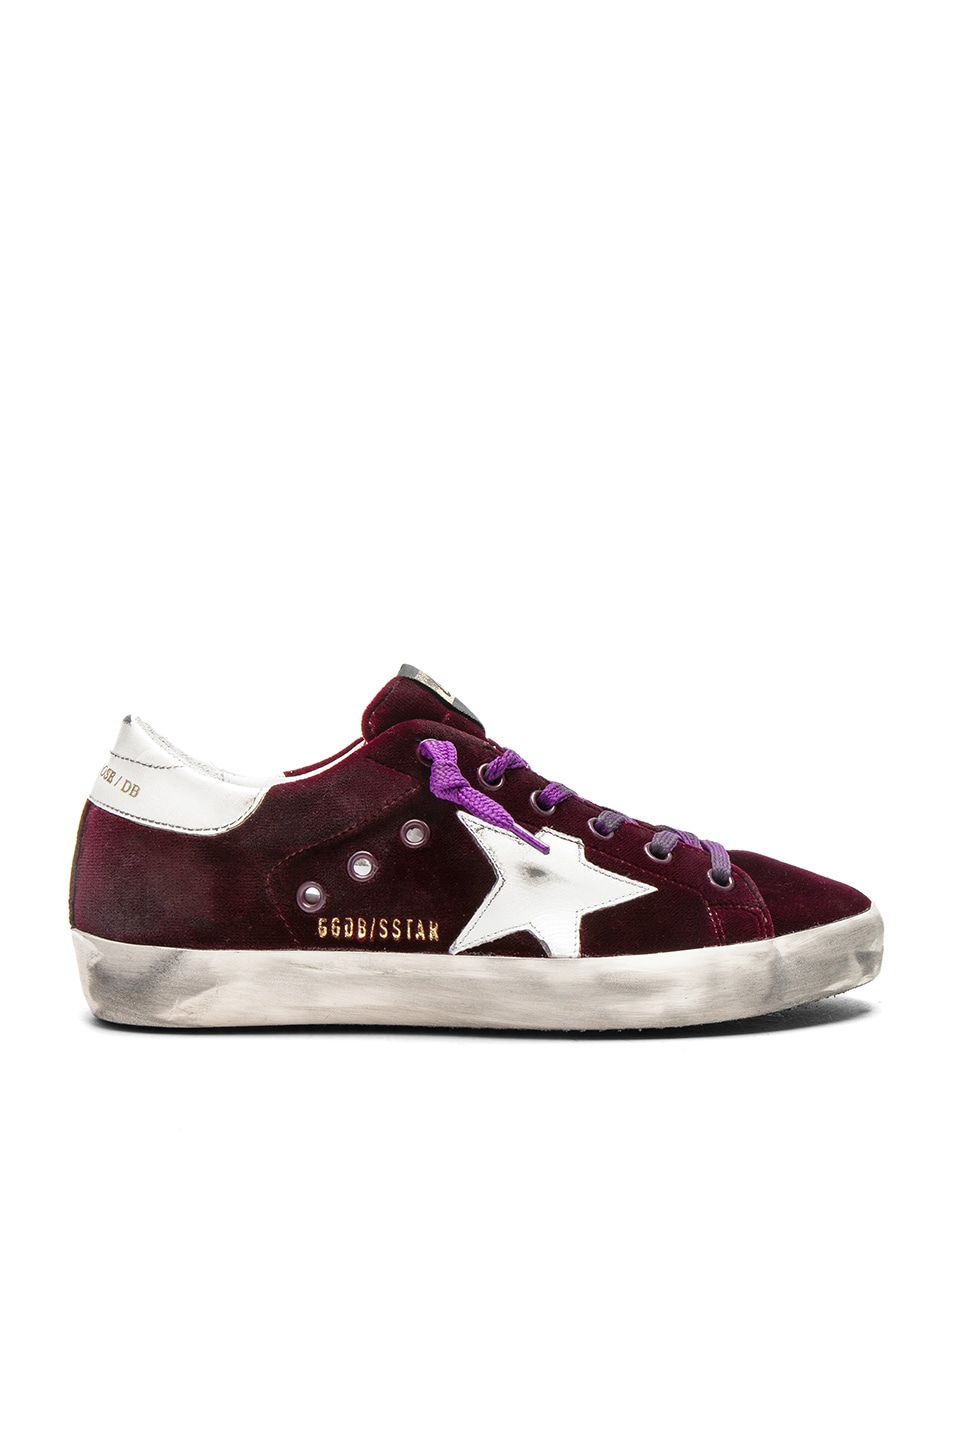 superstar bordeaux